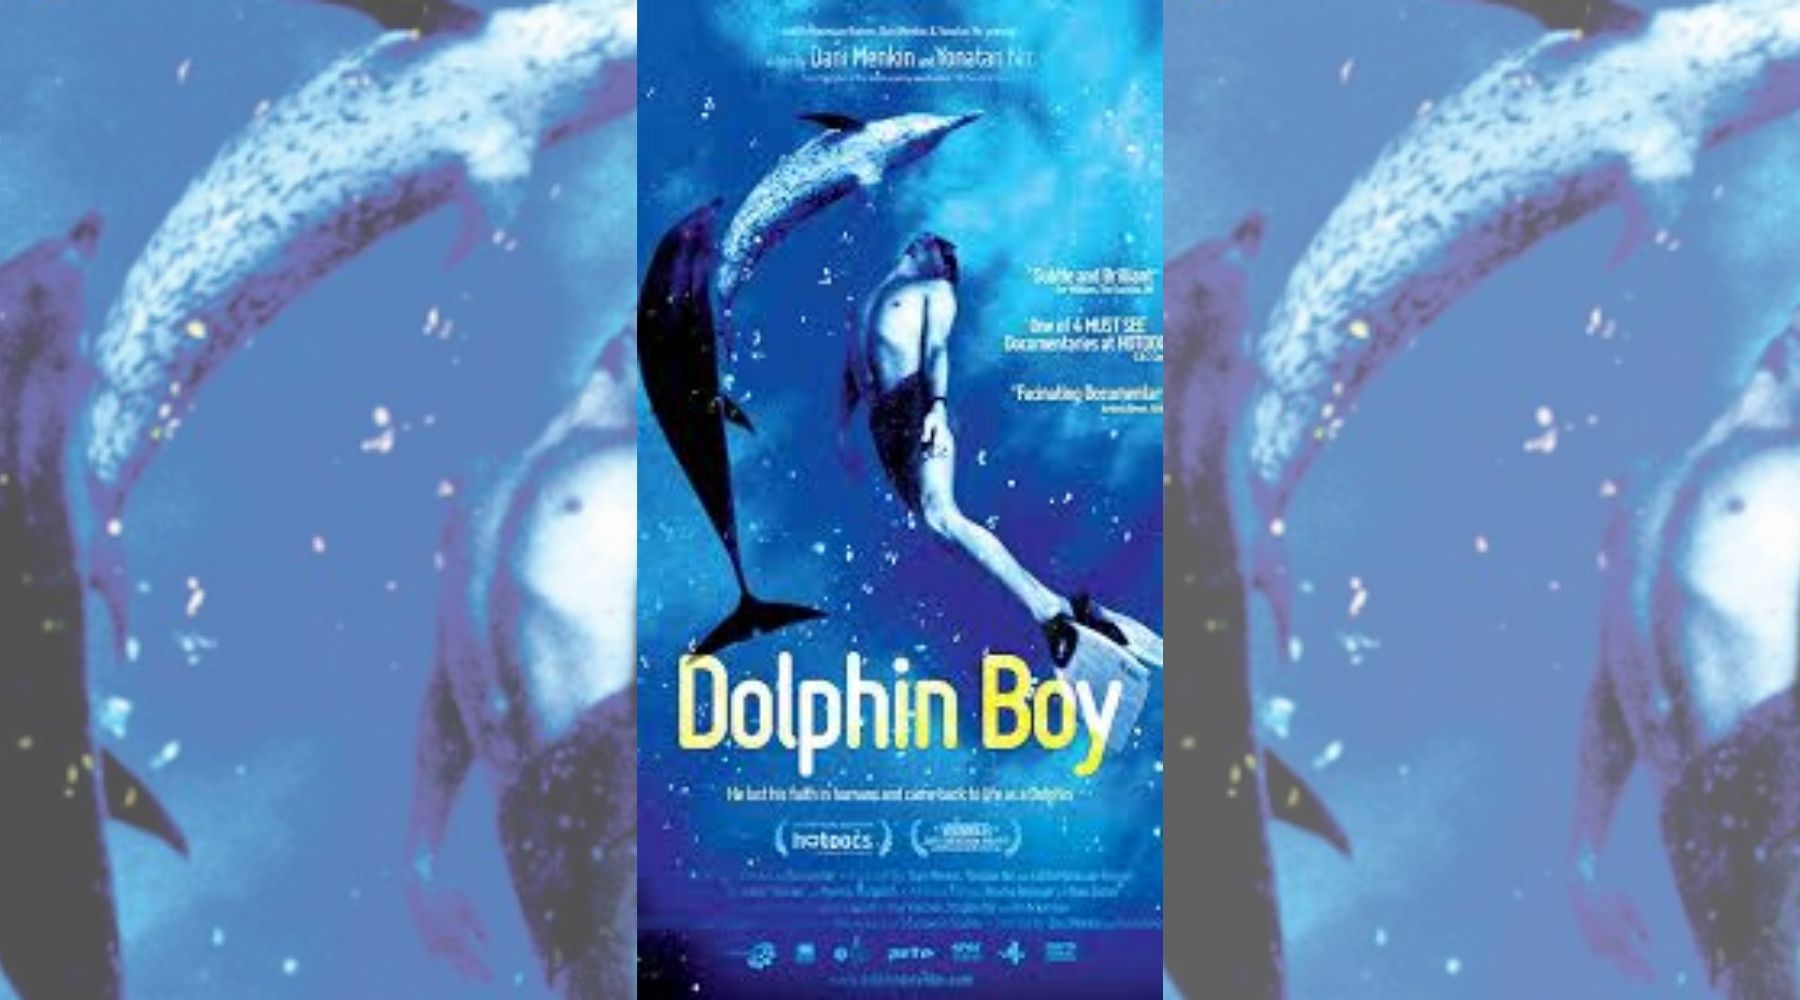 dolphin boy movie poster